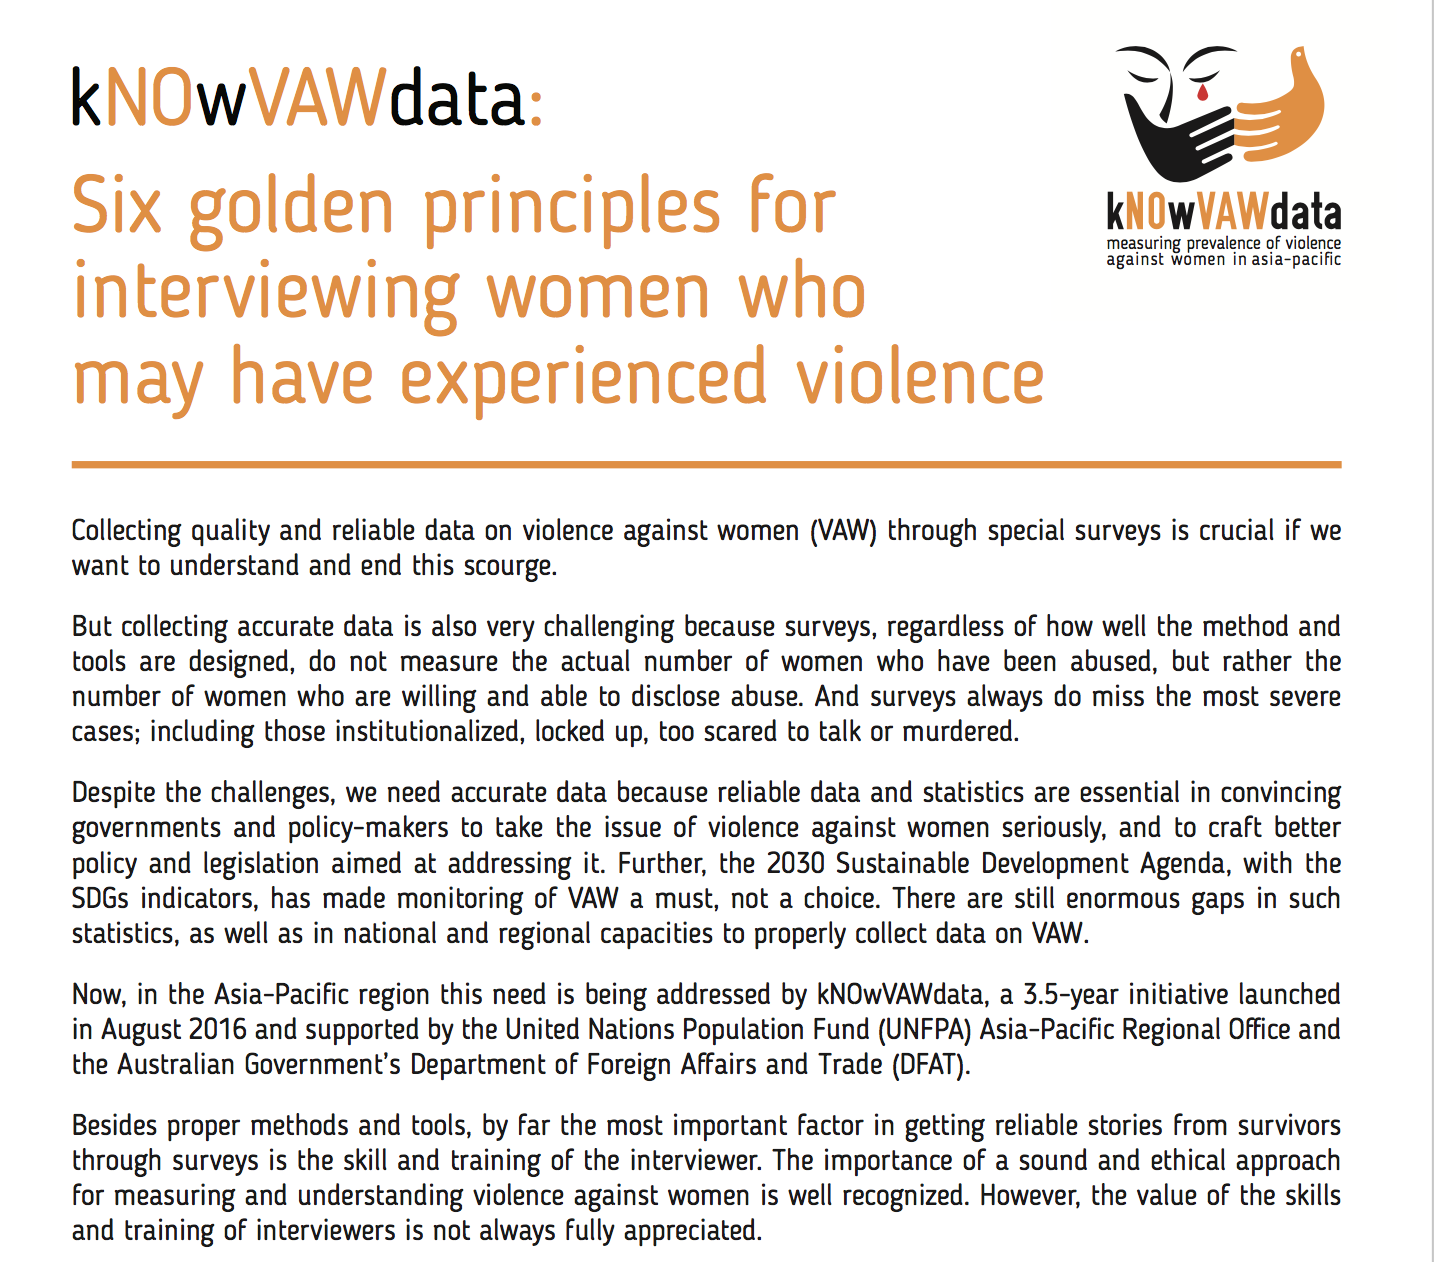 kNOwVAWdata six golden principles for interviewing women how may have experienced violence